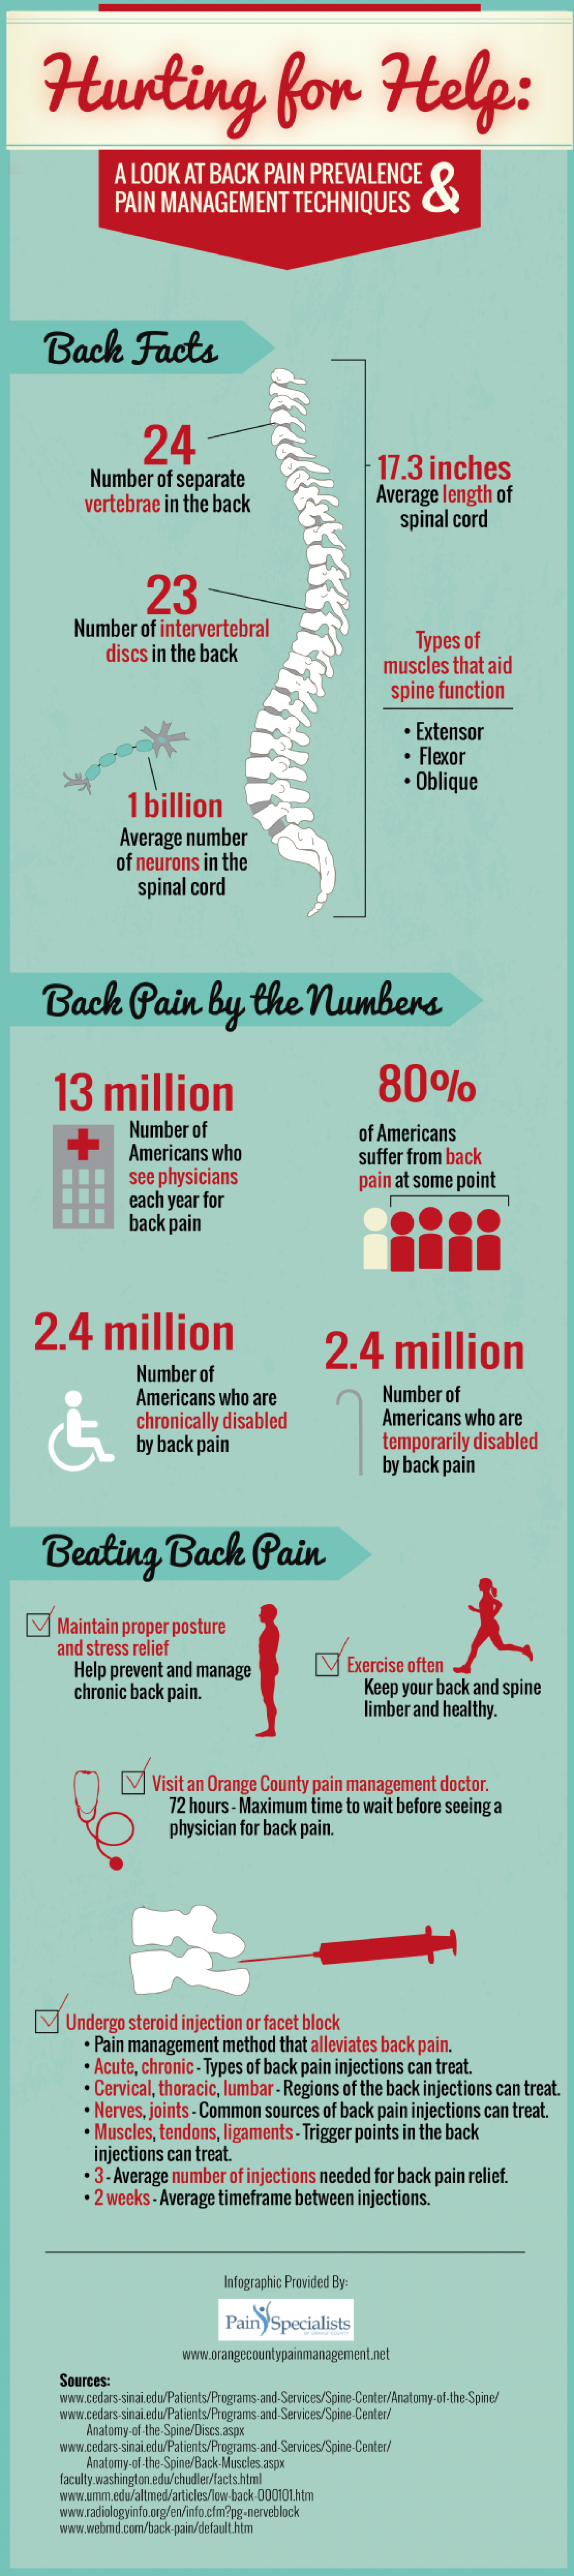 Hurting for Help: A Look at Back Pain Prevalence and Pain Management Techniques Infographic